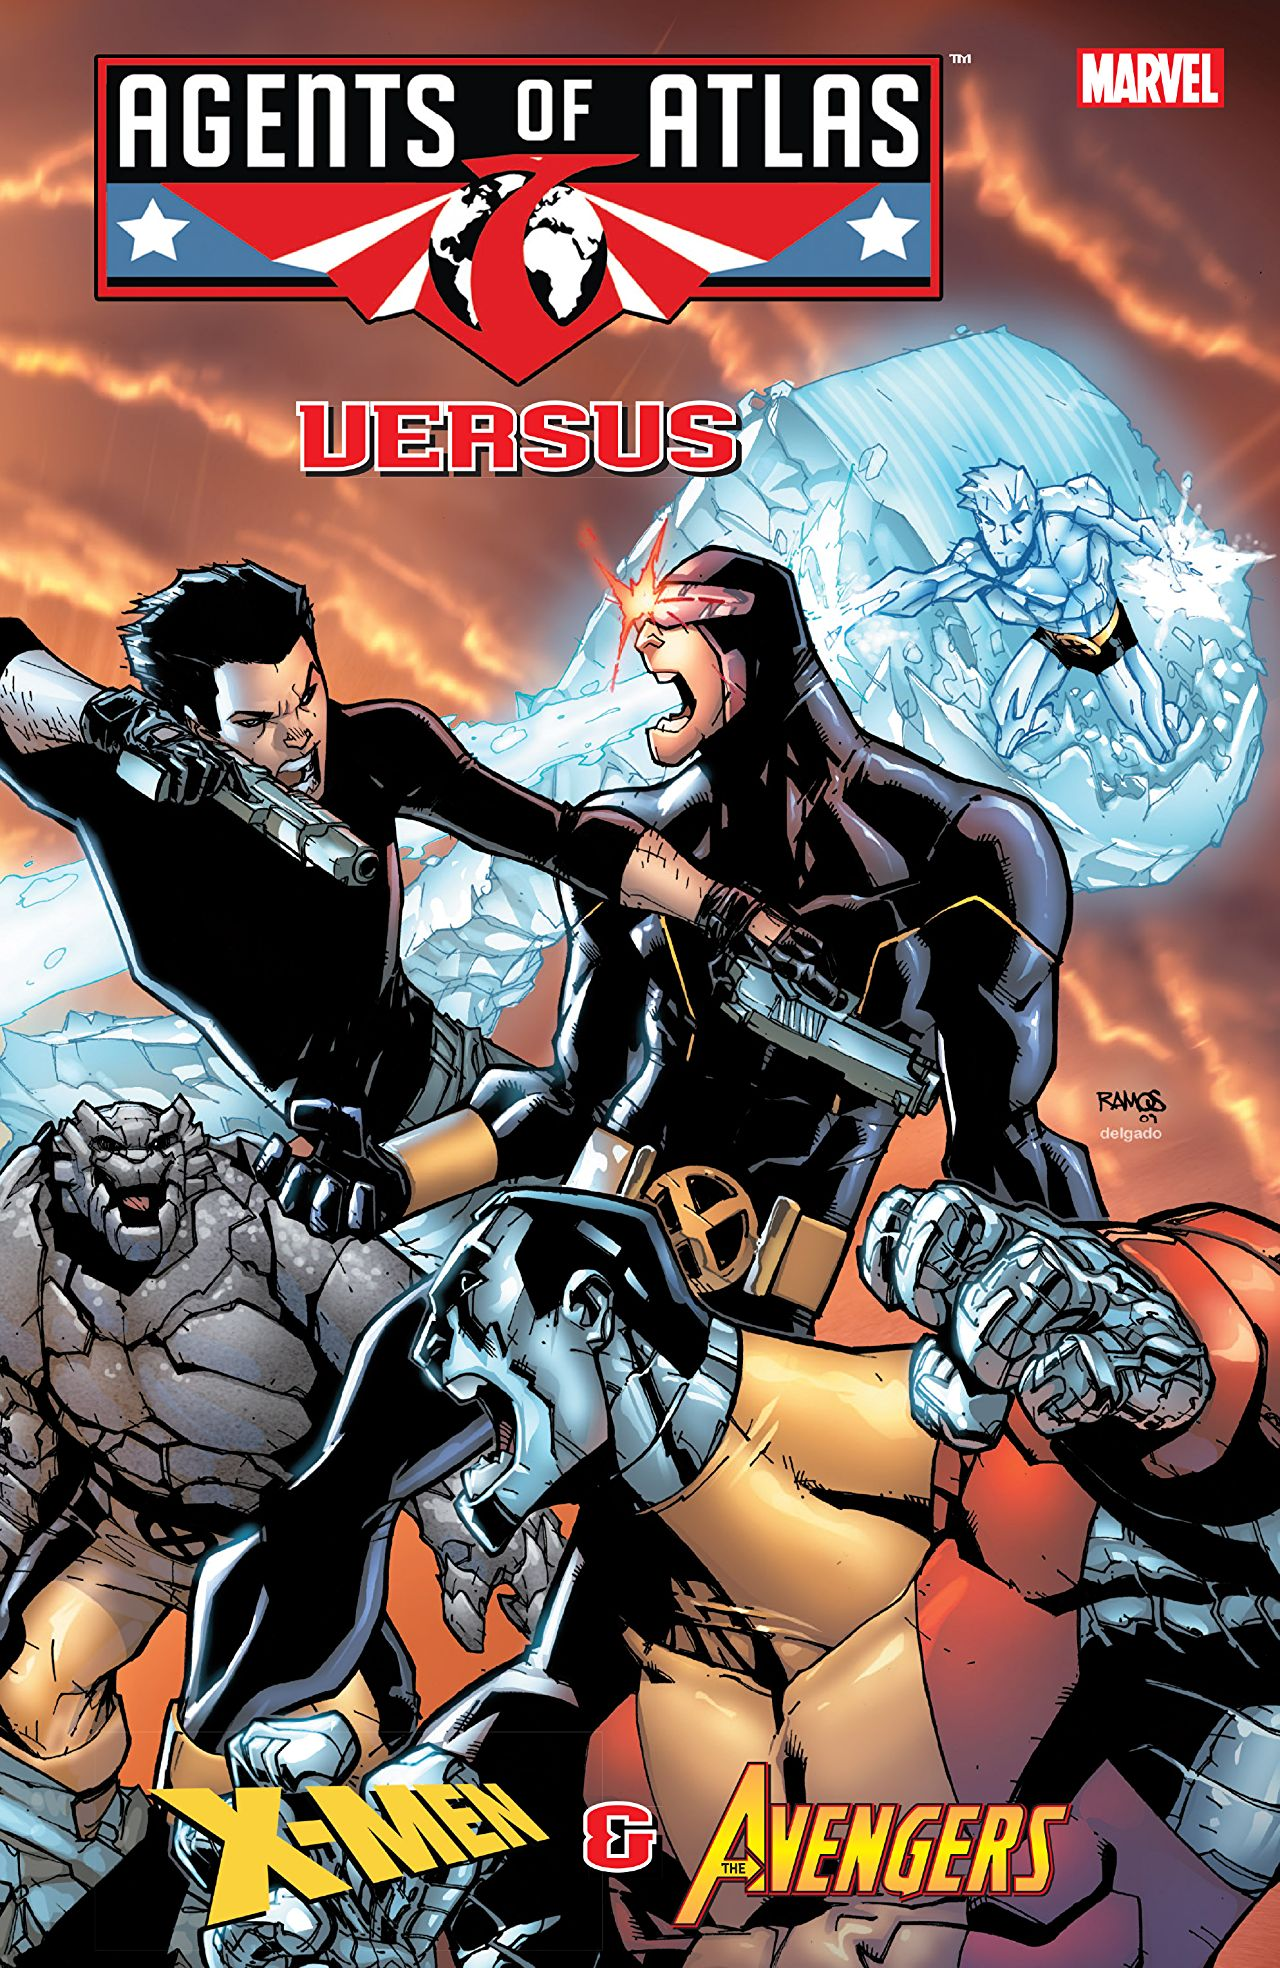 Agents of Atlas: The Complete Collection Vol. 2 TPB Review